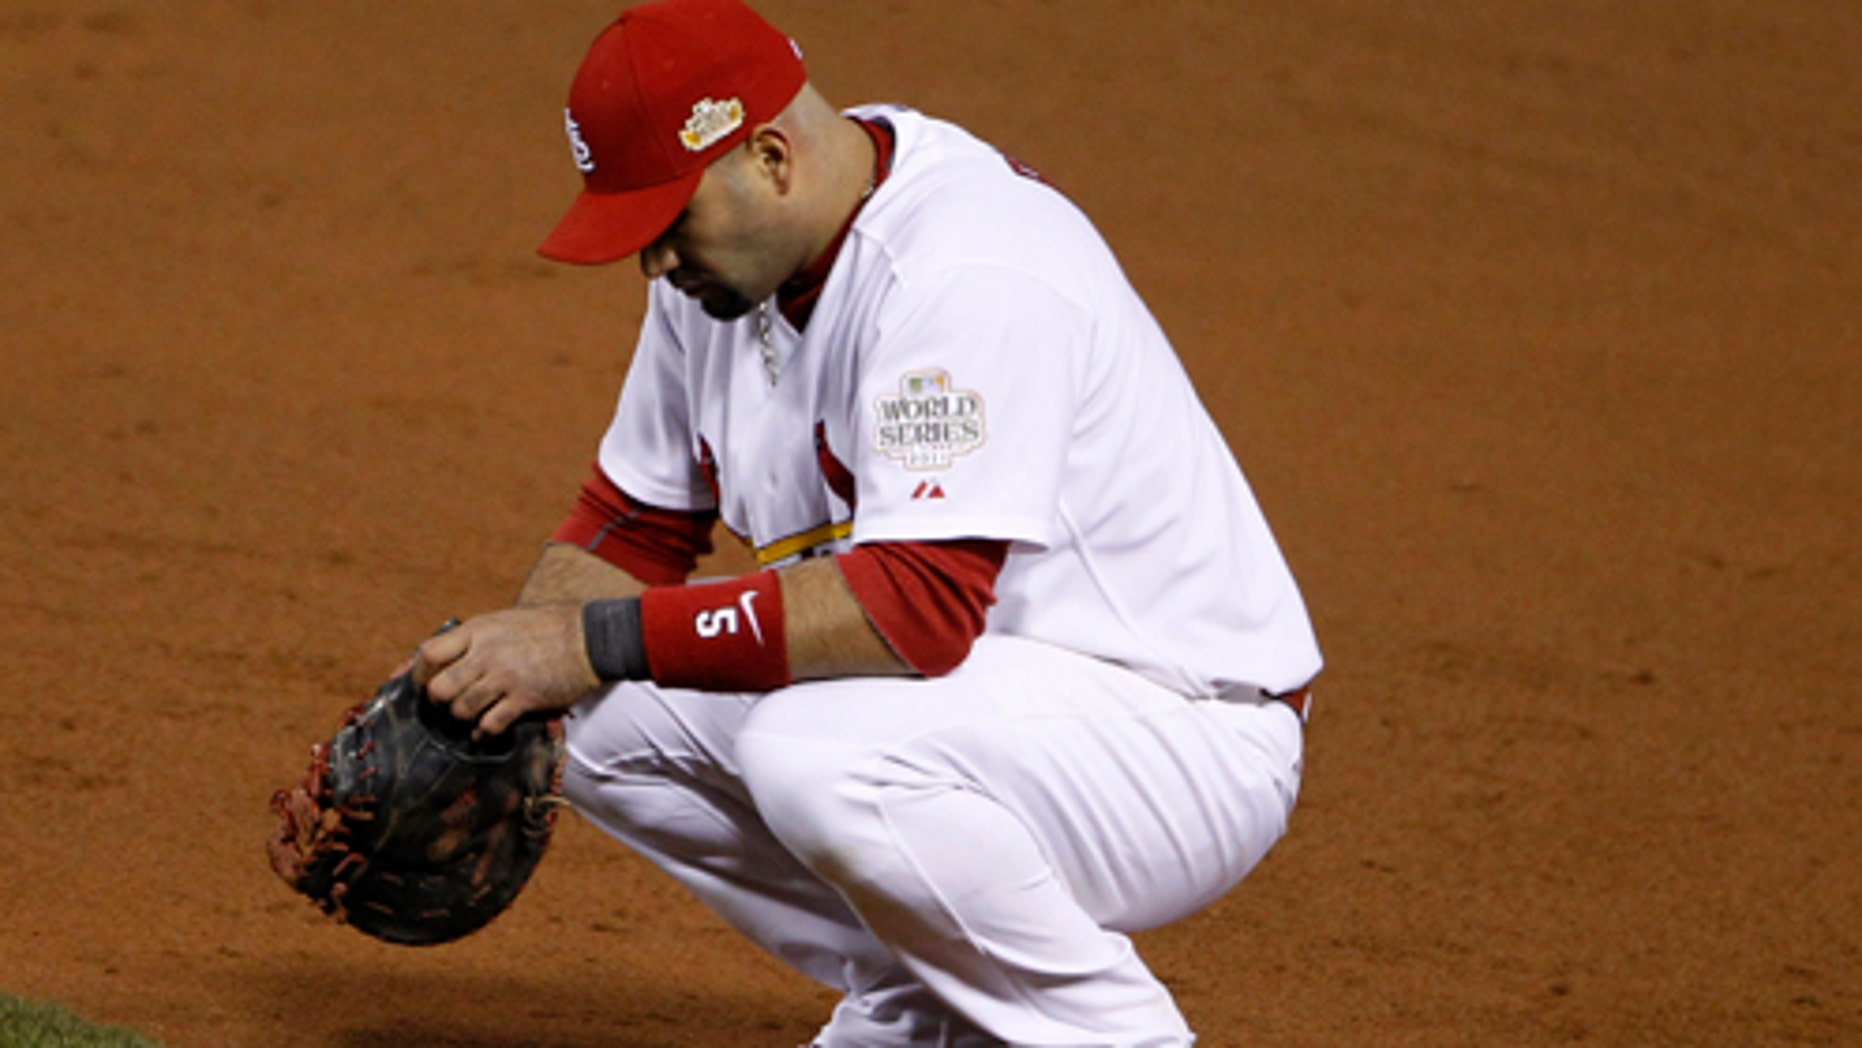 St. Louis Cardinals' Albert Pujols pauses during a pitching change during the ninth inning of Game 2 of baseball's World Series against the Texas Rangers Thursday, Oct. 20, 2011, in St. Louis. (AP Photo/Eric Gay)